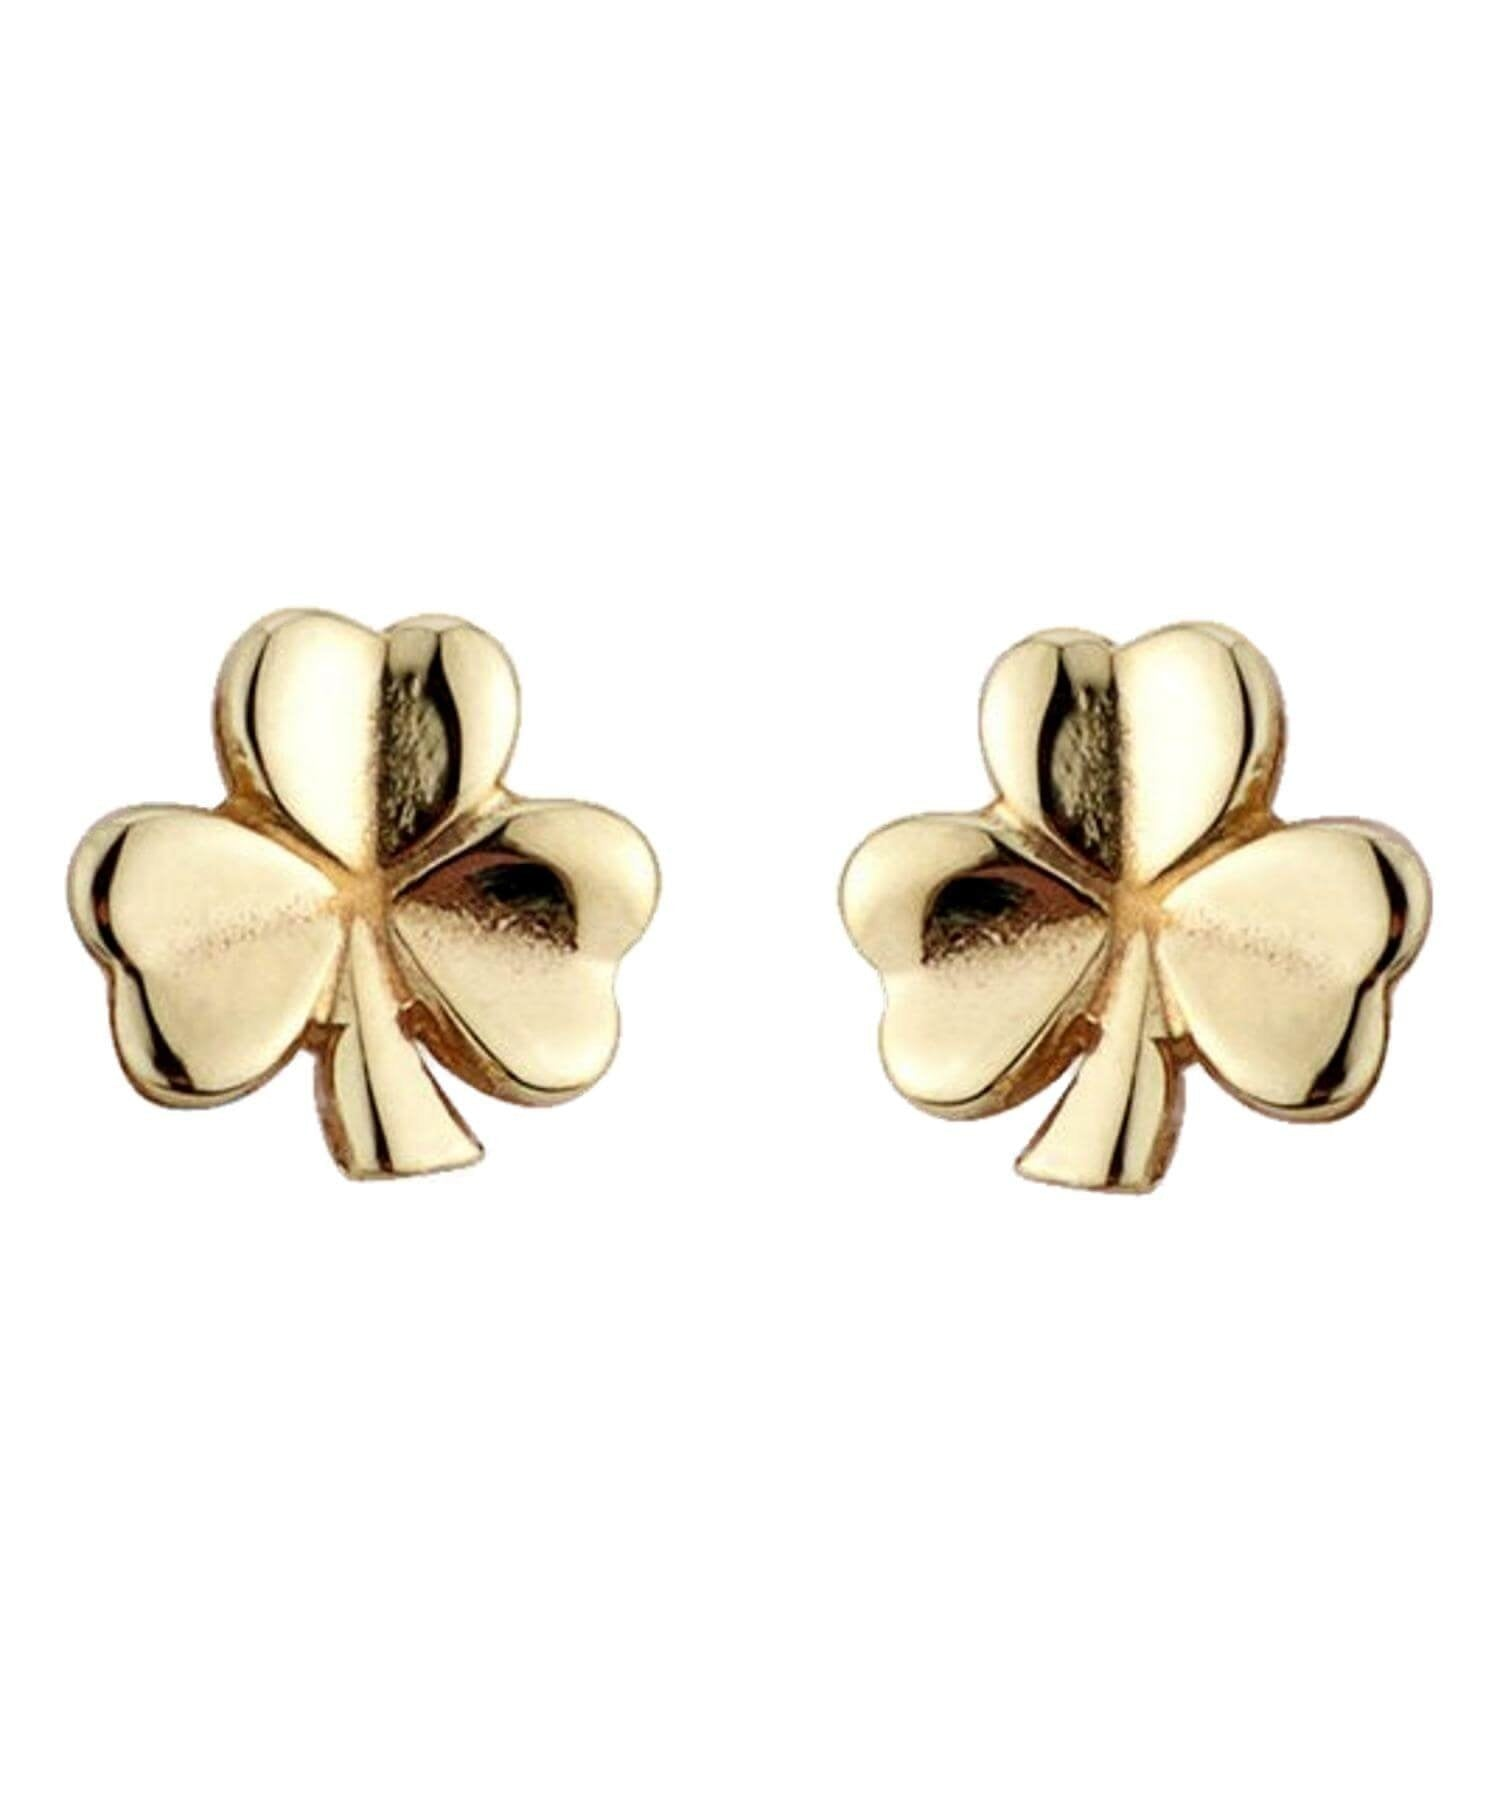 Gold Shamrock Earrings - [Solvar] - Jewellery - Irish Gifts